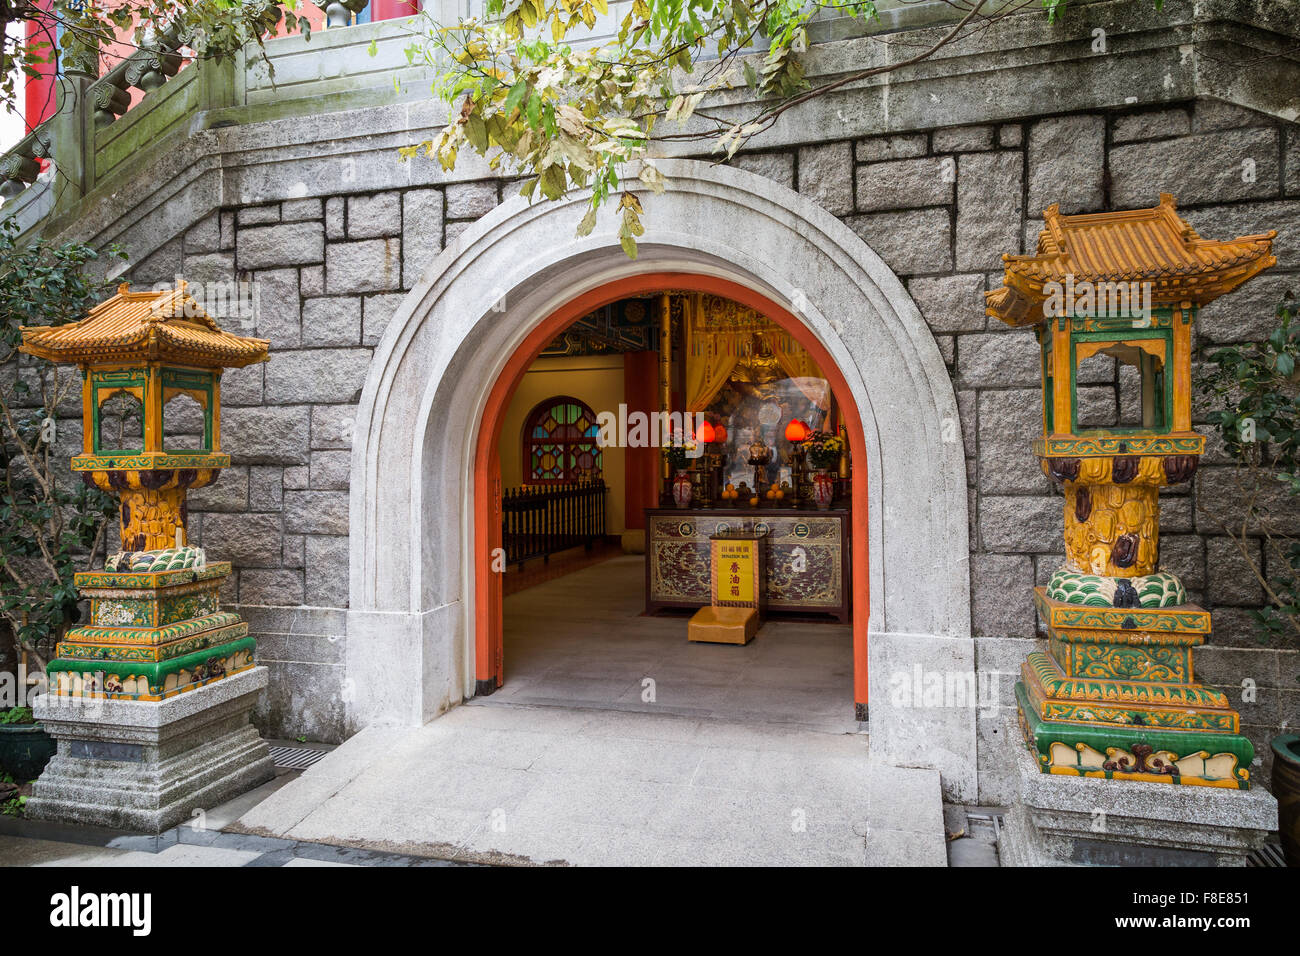 Hall of Bodhisattva Skanda - the main entrance of the Po Lin Monastery on Lantau Island in Hong Kong, China. - Stock Image